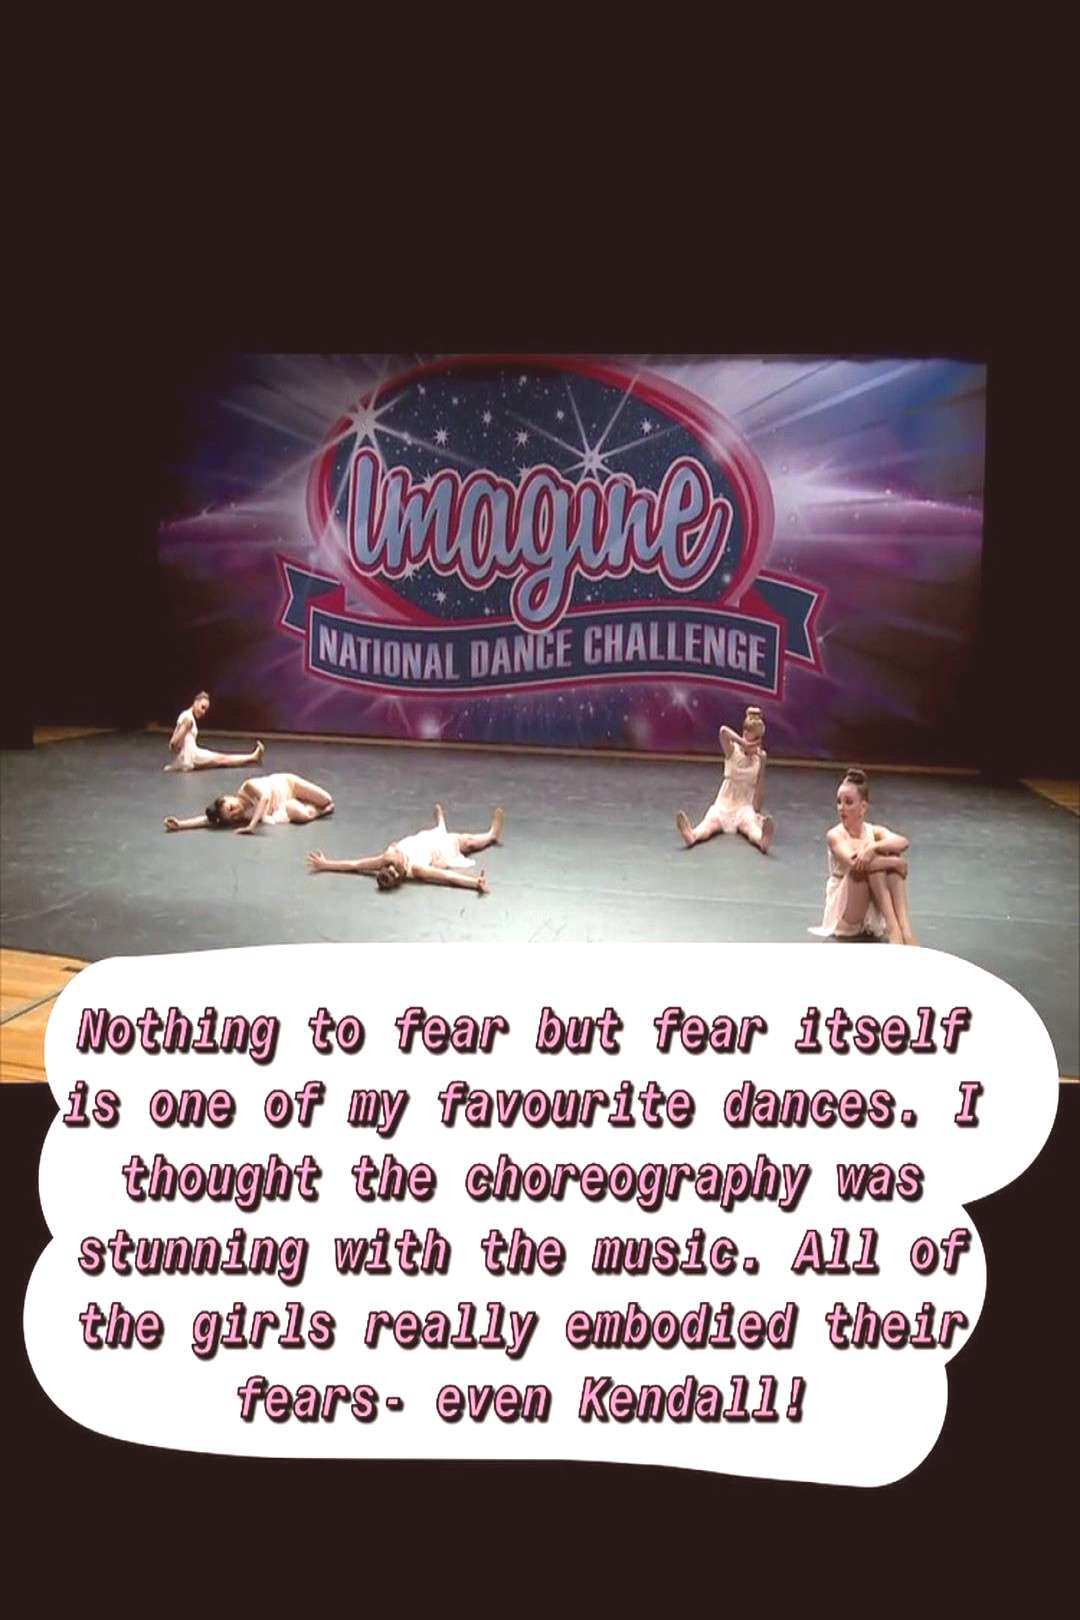 Aldc on June 06 2020 text that says umagine NATIONAL DANCE CHALLE